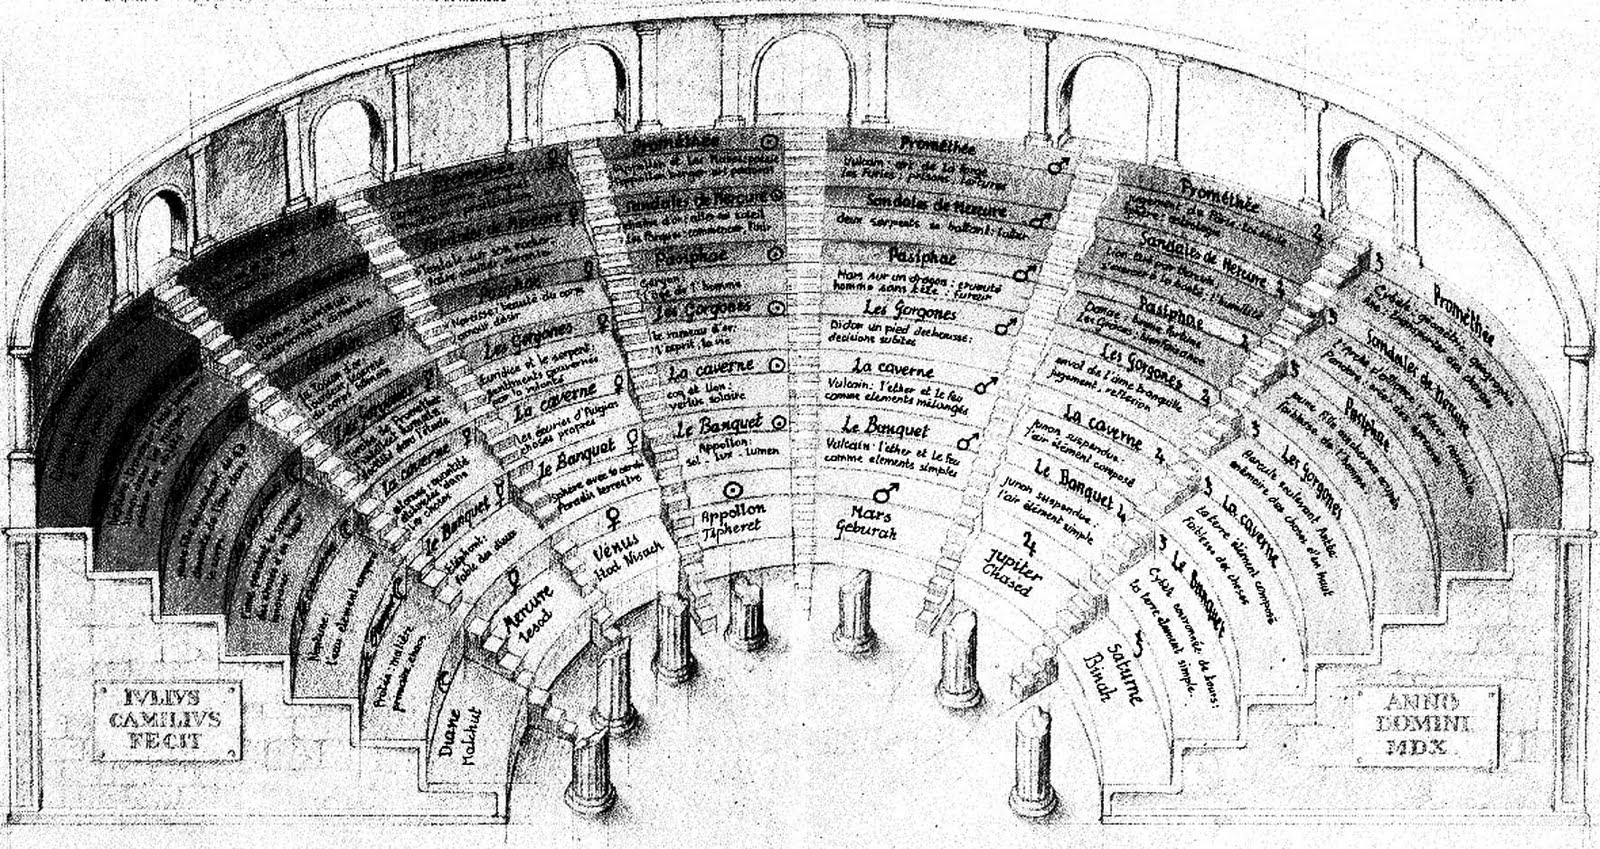 Palace of Memory: a description of the method for memorizing 4